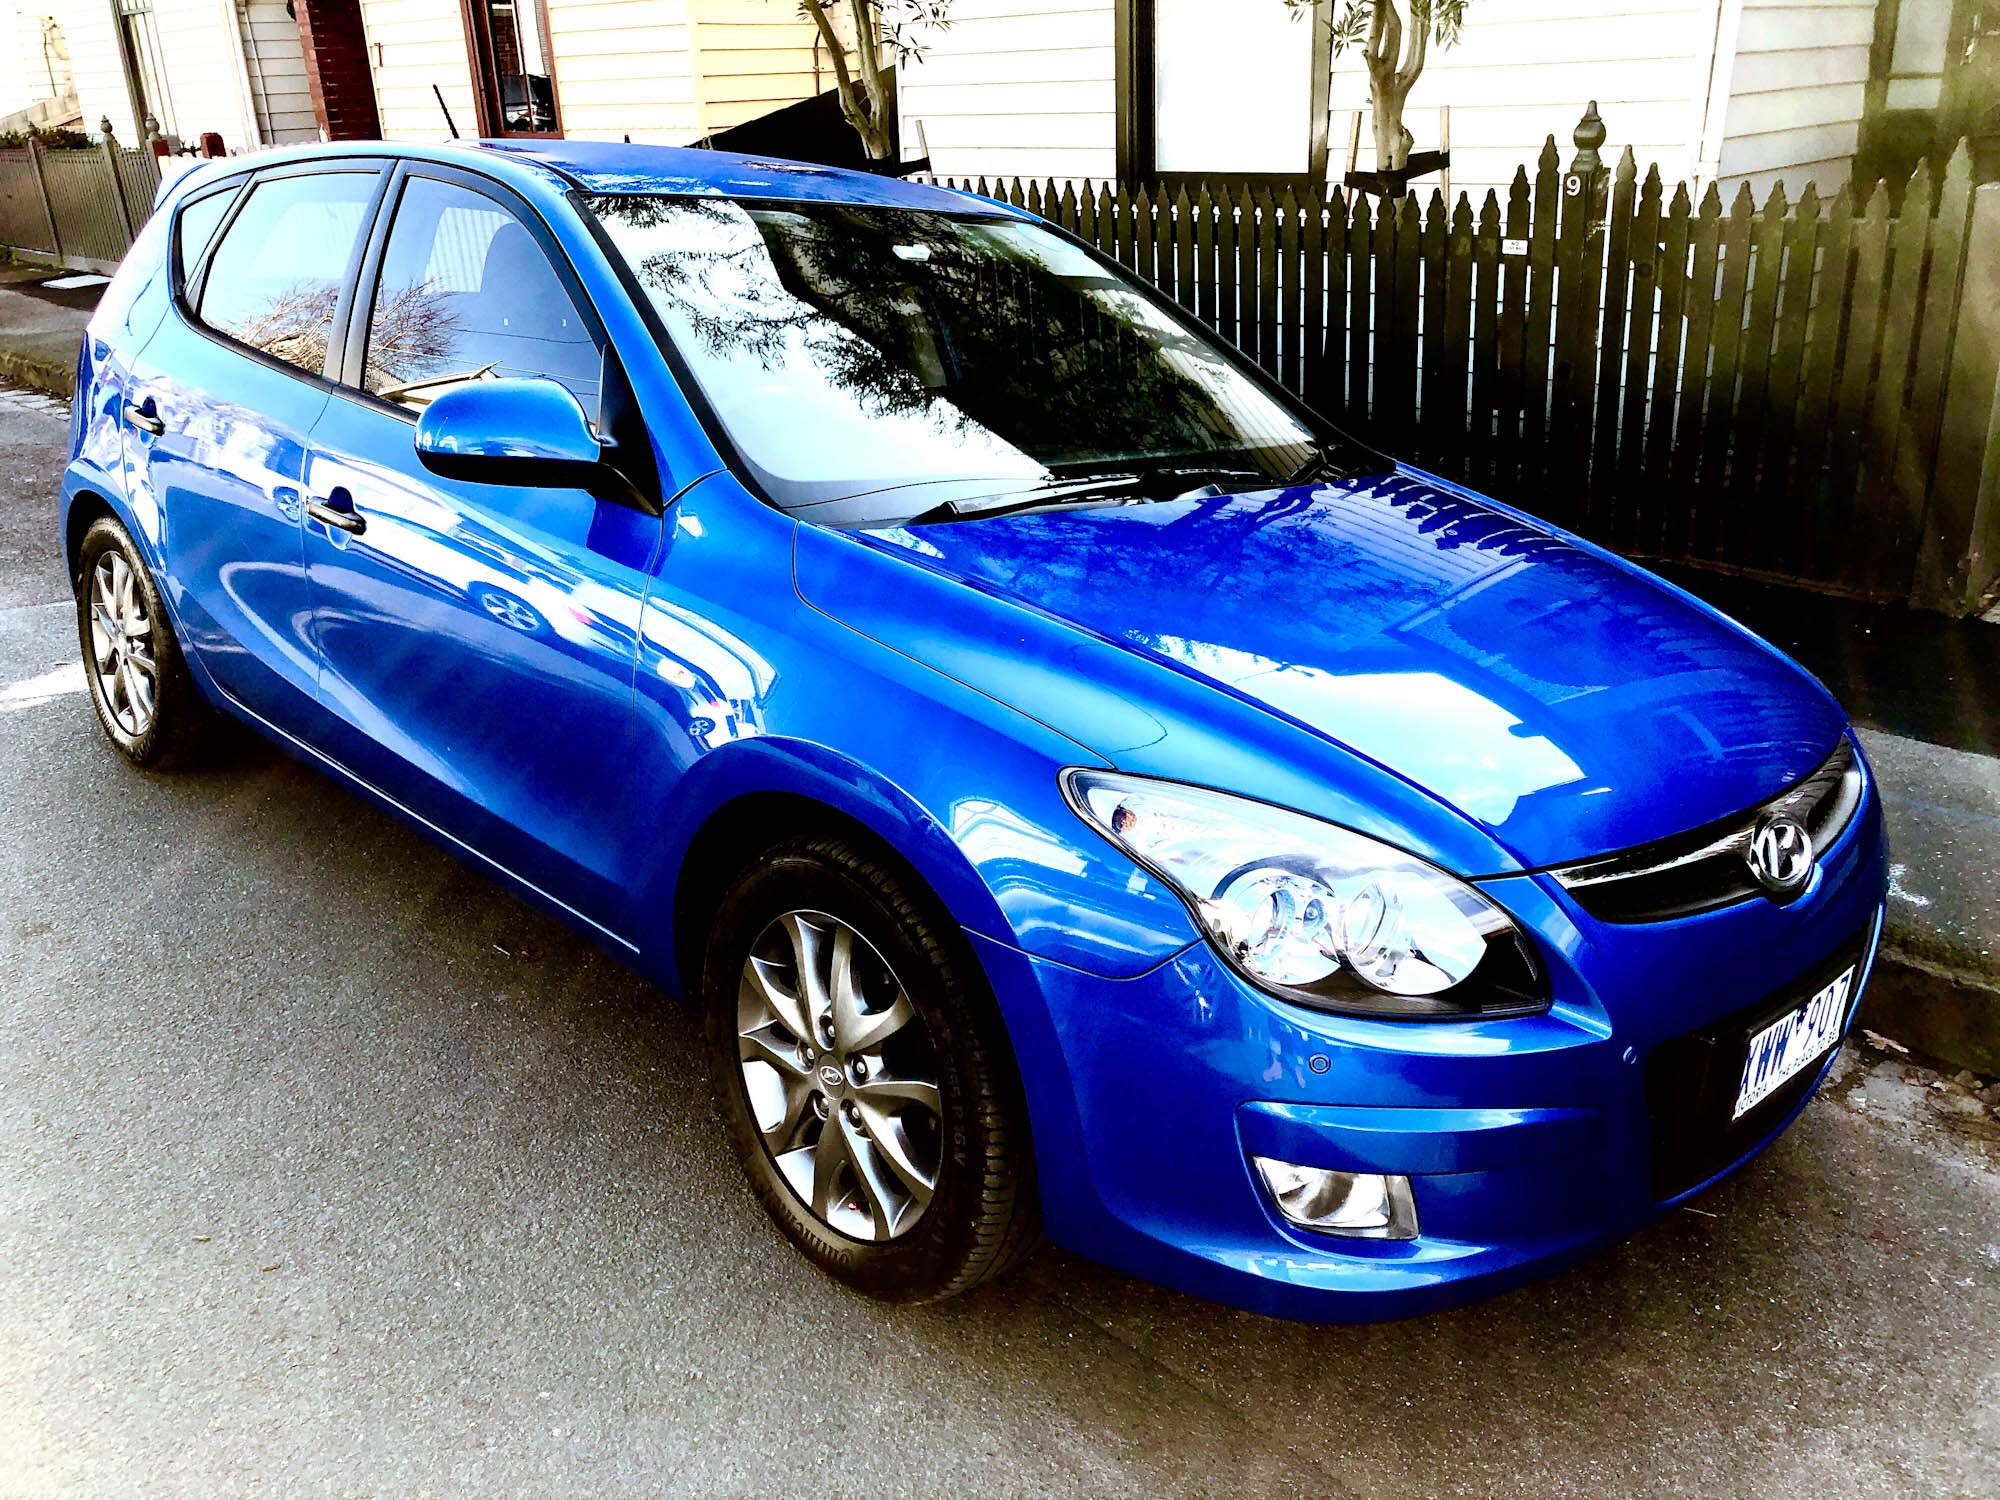 Picture of Byron's 2010 Hyundai I30